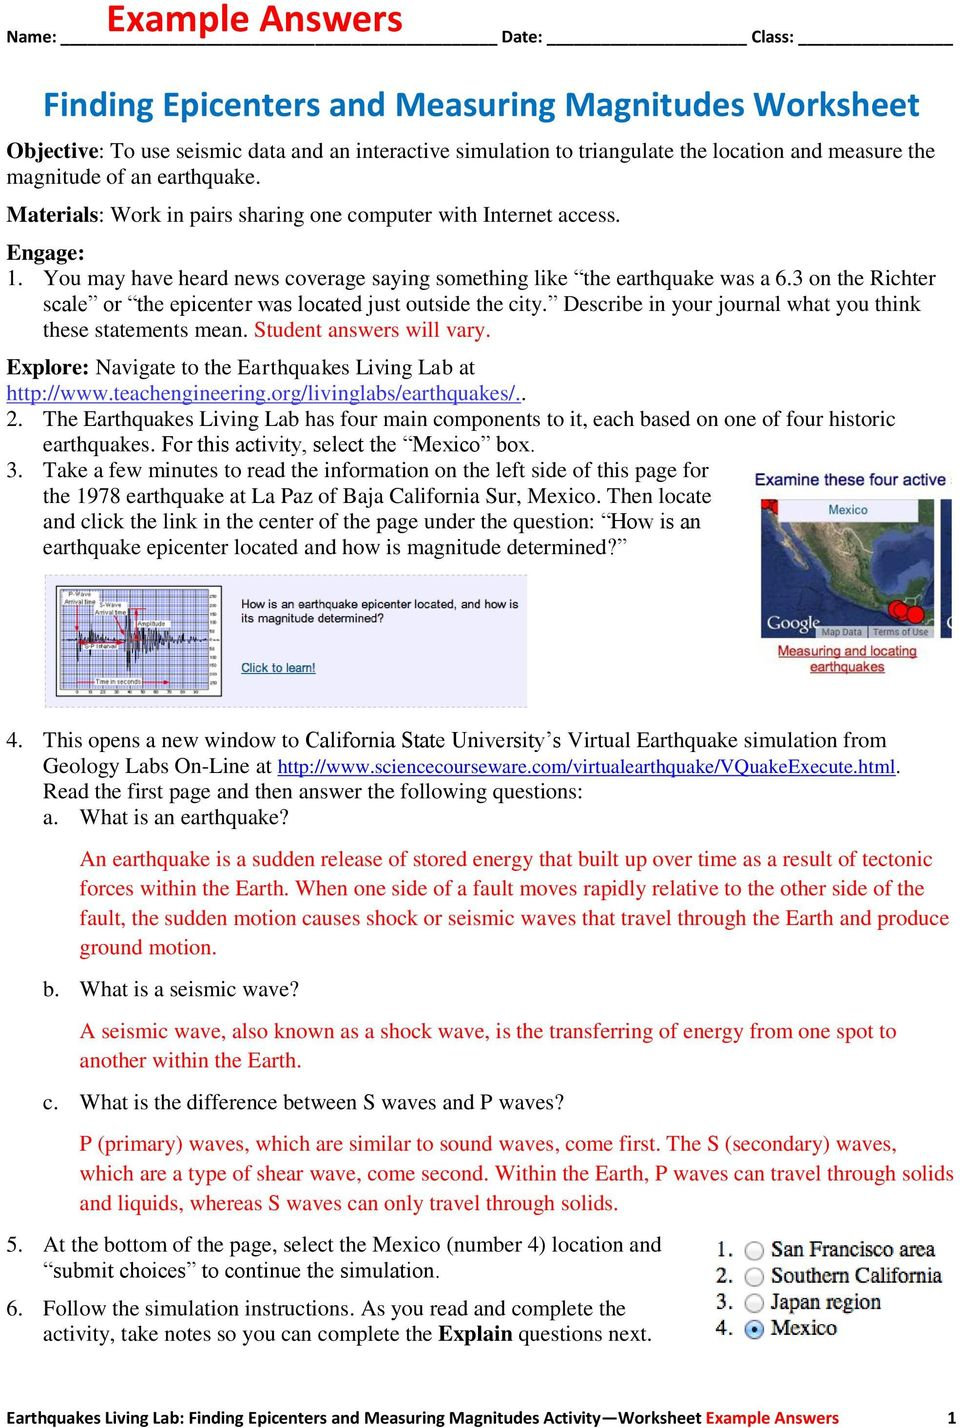 worksheet Find The Epicenter Worksheet name date class finding epicenters and measuring magnitudes 3 on the richter scale or epicenter was located just outside city describe